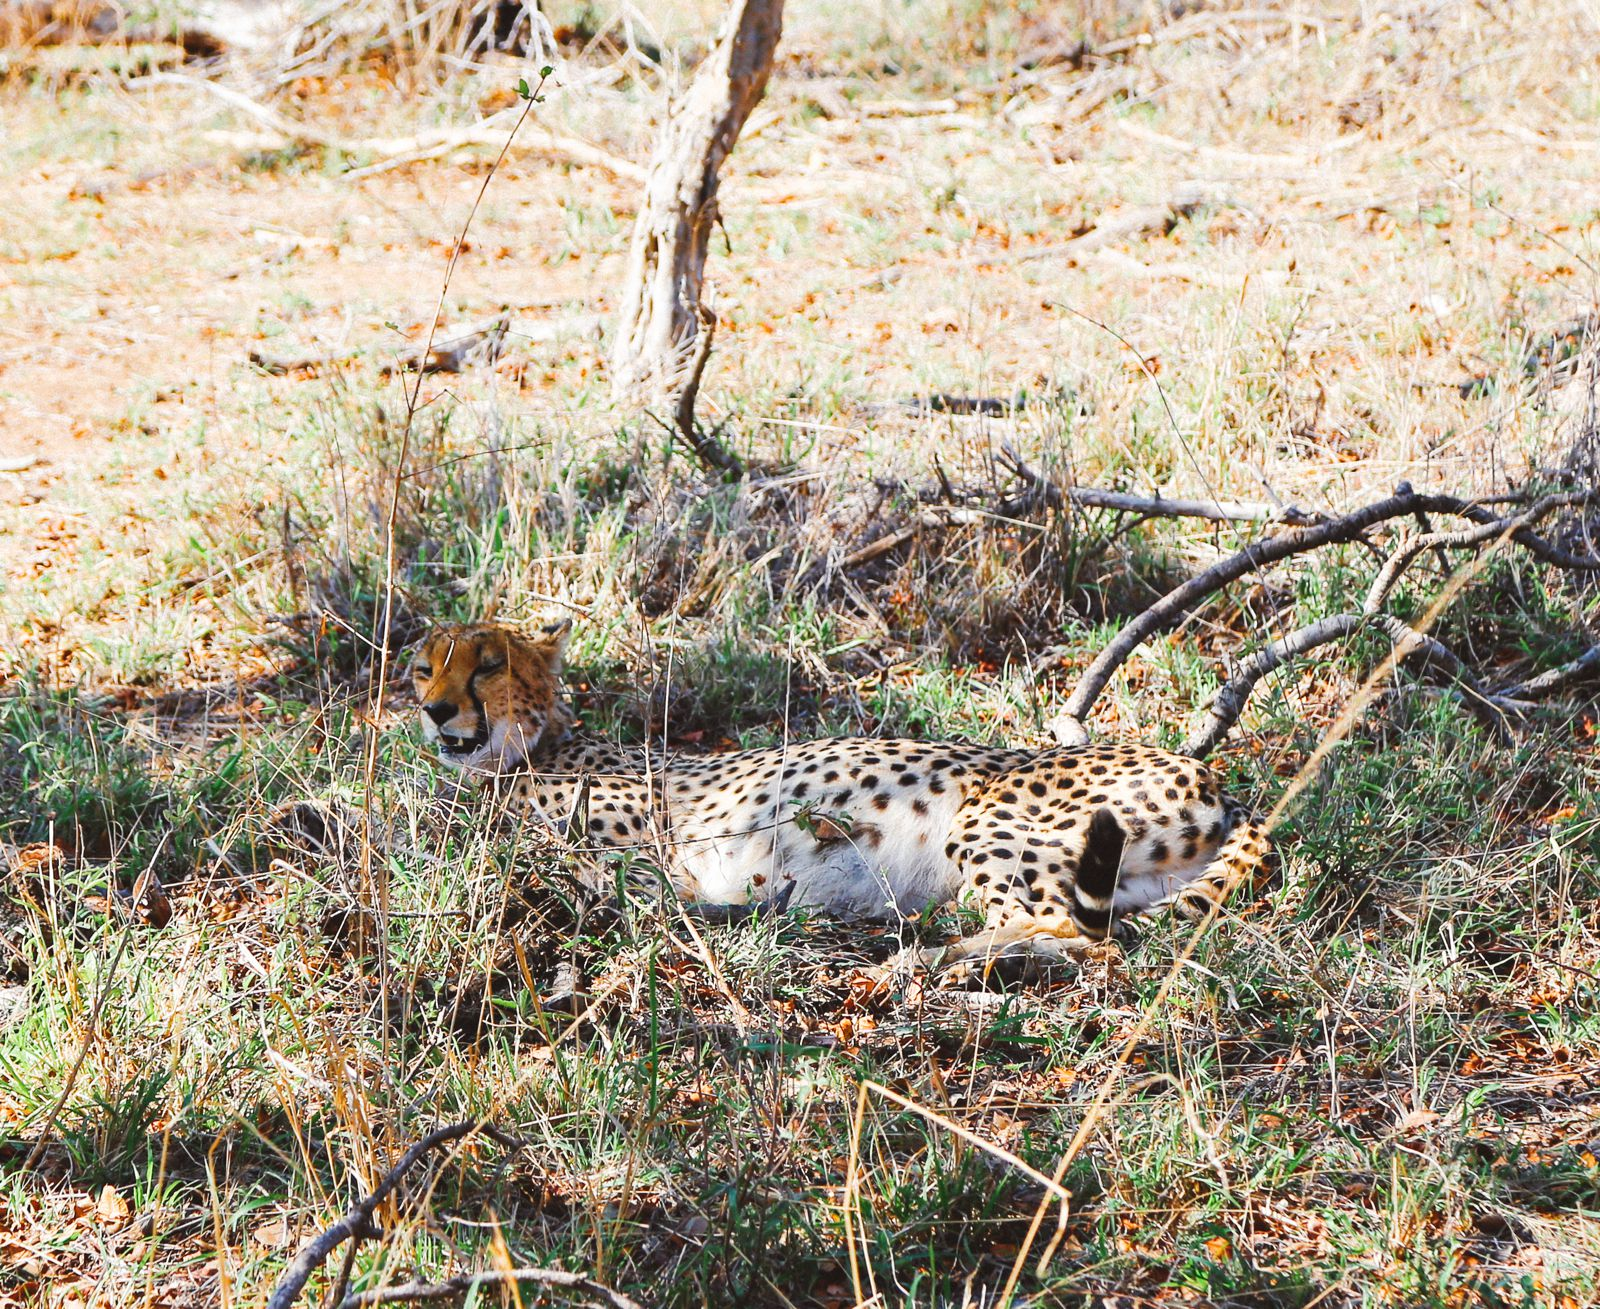 Sunrise Till Sunset - A 24 Hour South African Safari Diary (25)